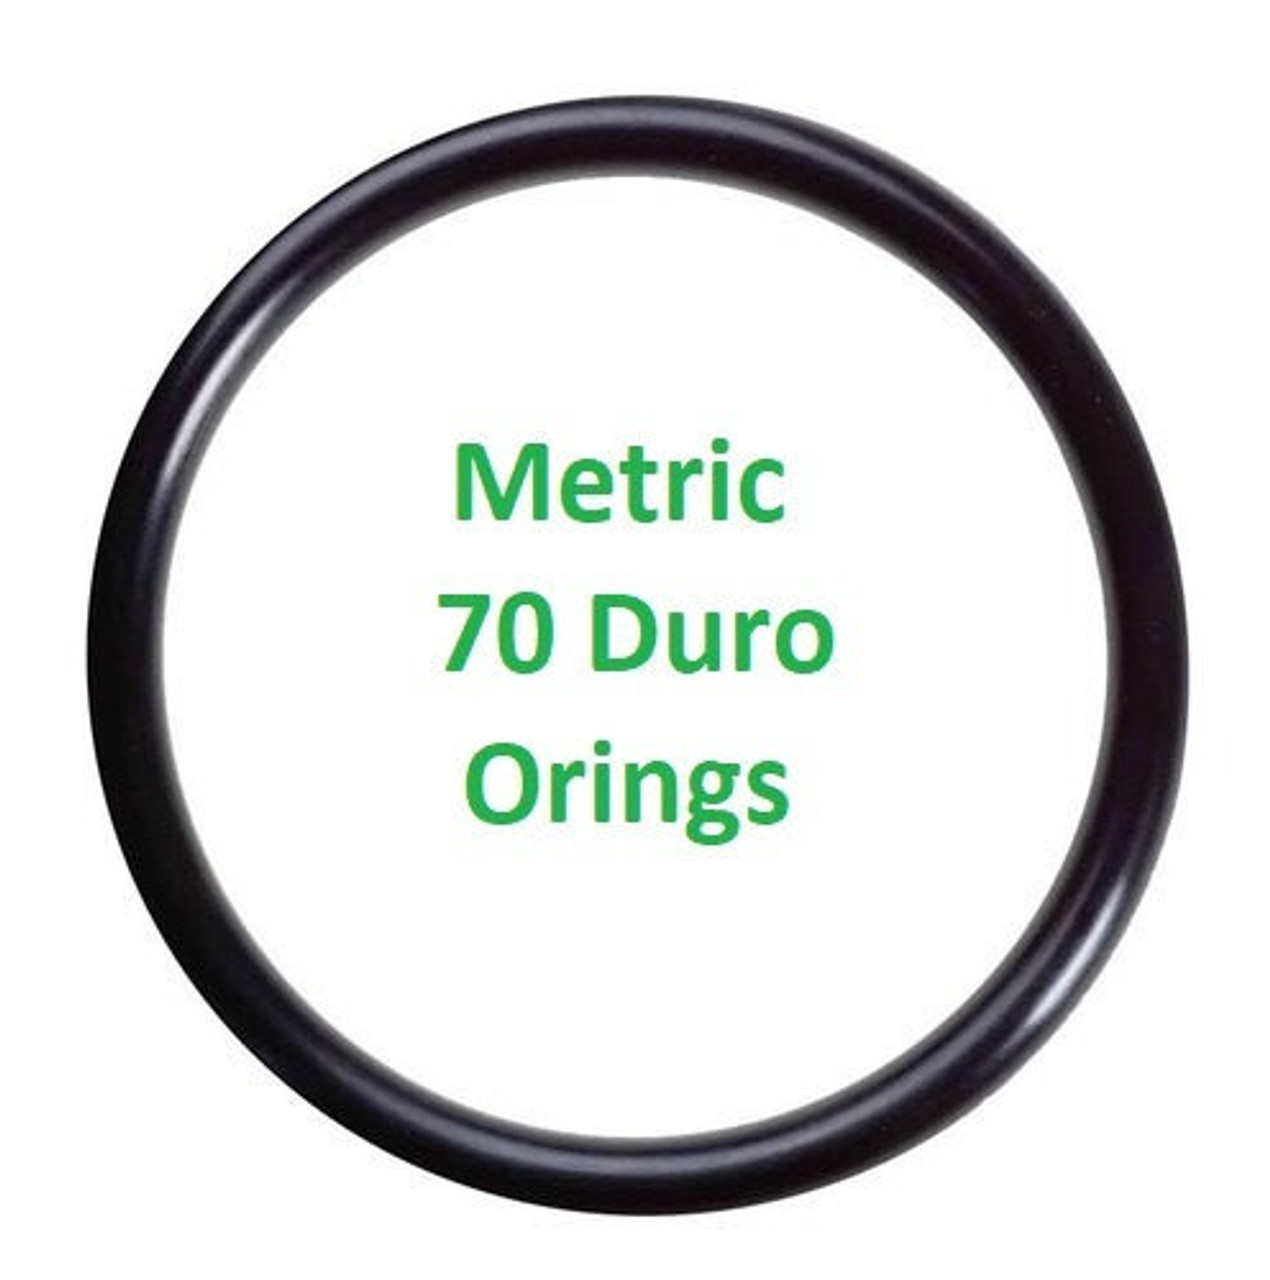 Metric Buna  O-rings 164.1 x 8.4mm  Price for 1 pc